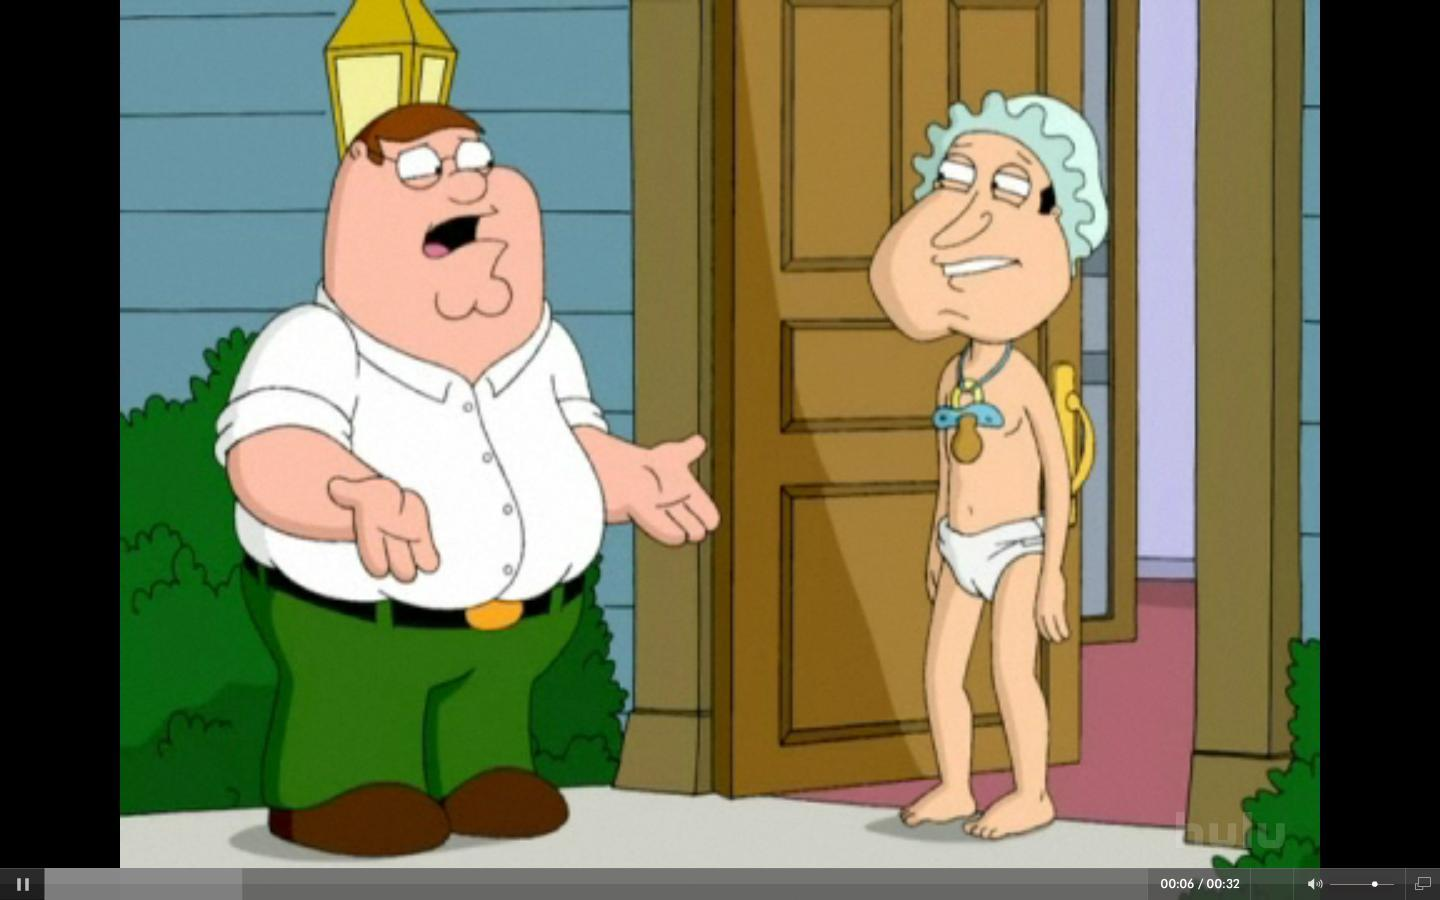 Quagmire, undoubtly is a huge pervert. Which out of his